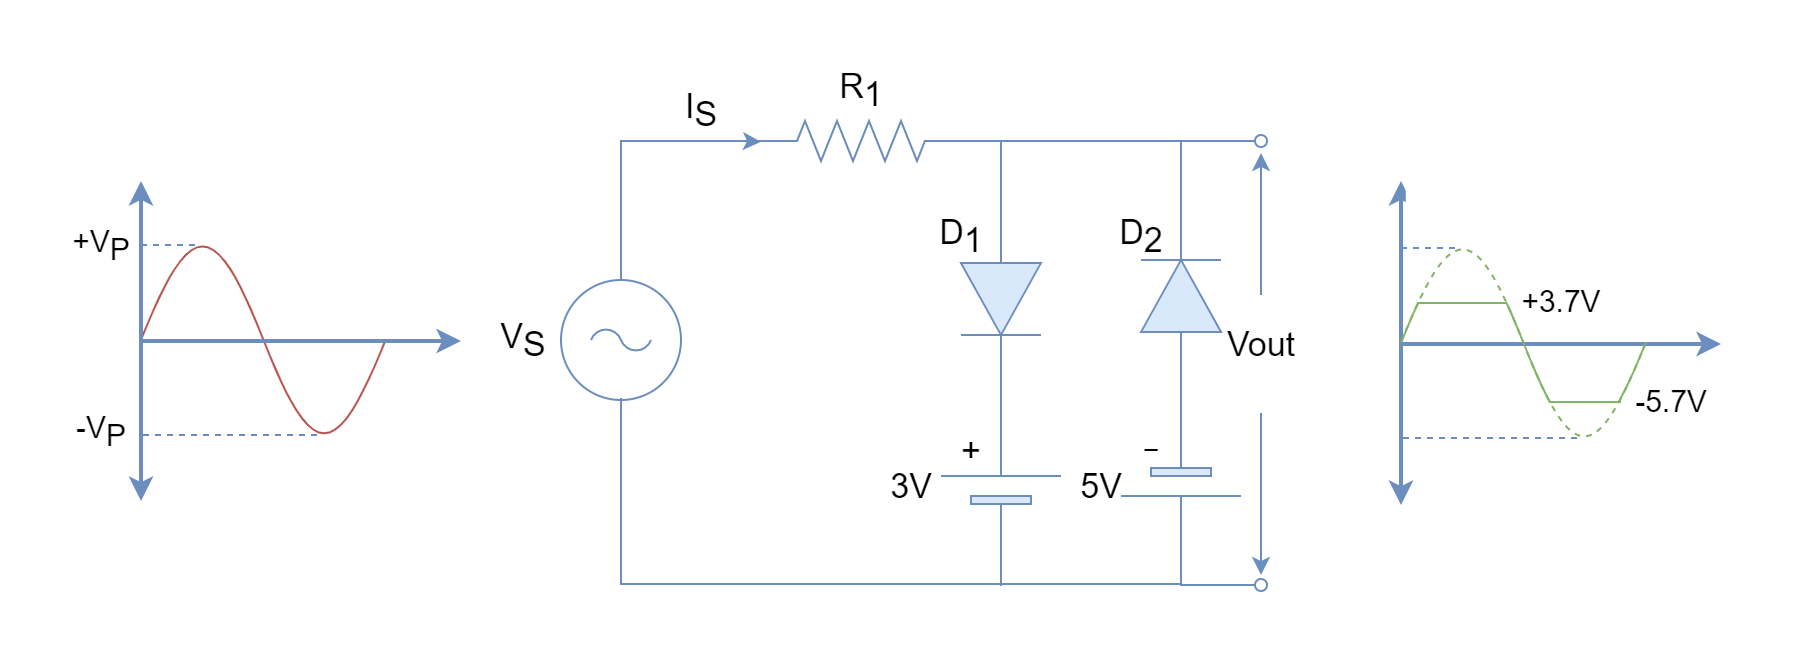 Positive and negative cycles bias diode clipper